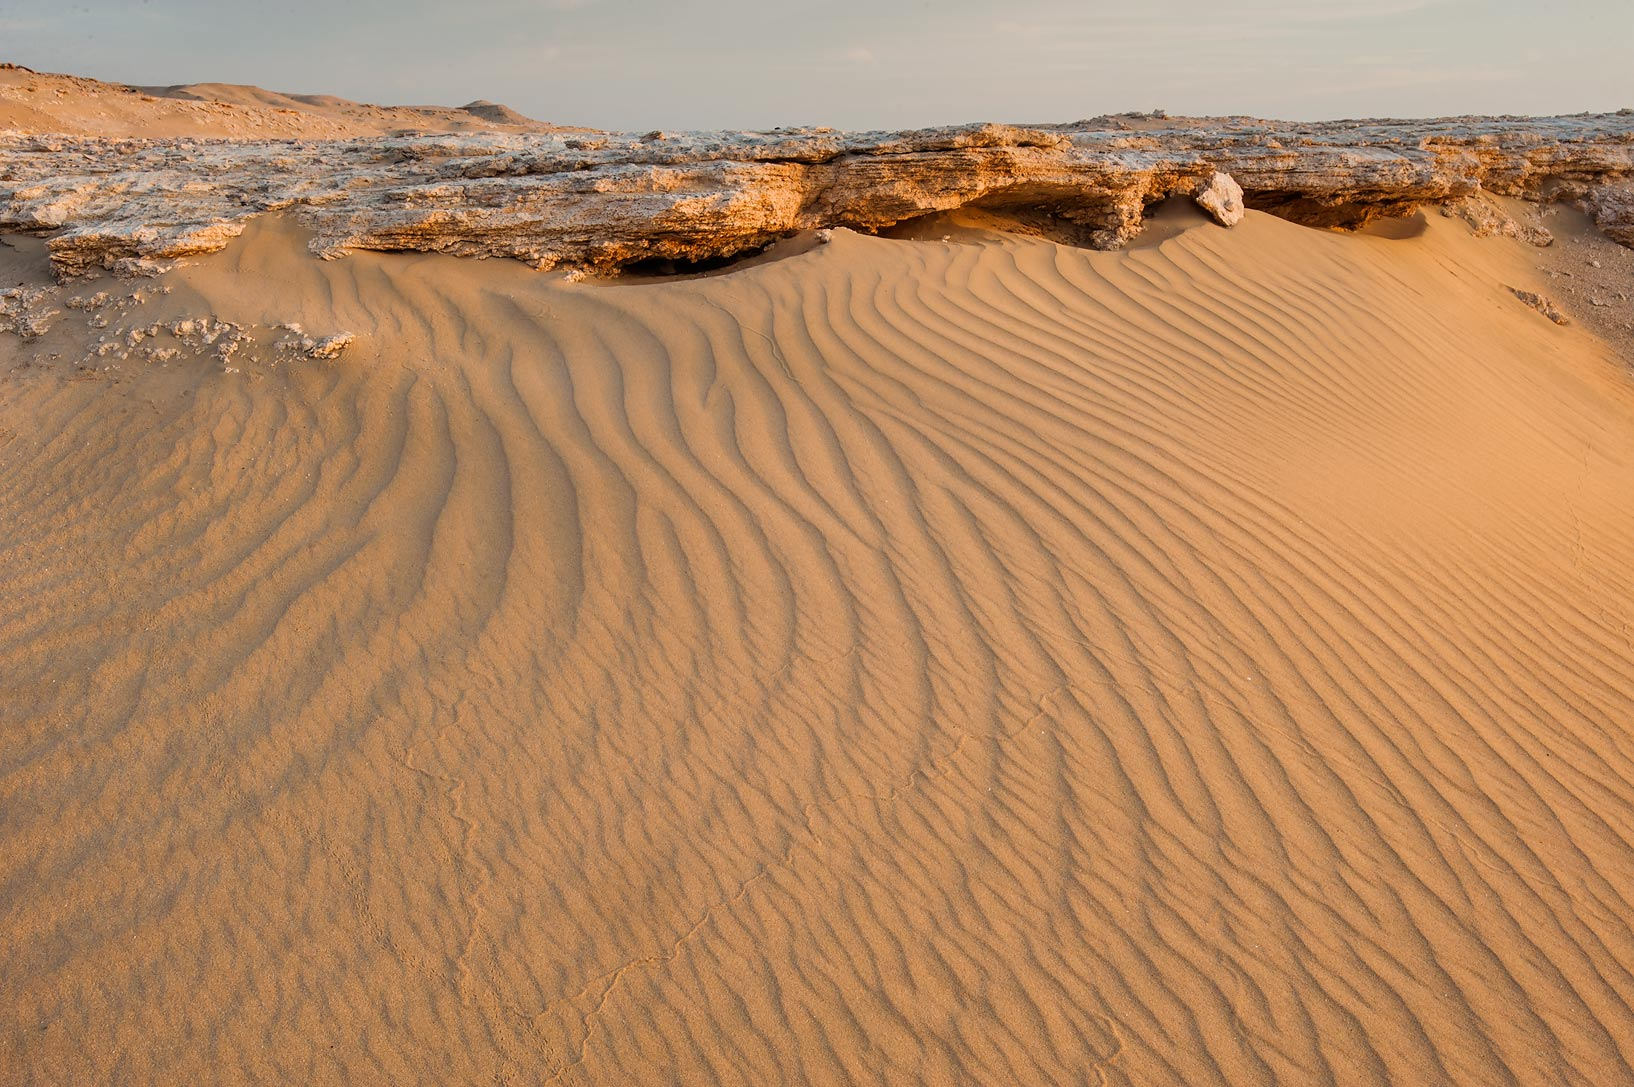 Sand ripples in area of Jebel Al-Nakhsh (Khashm an Nakhsh). South-western Qatar